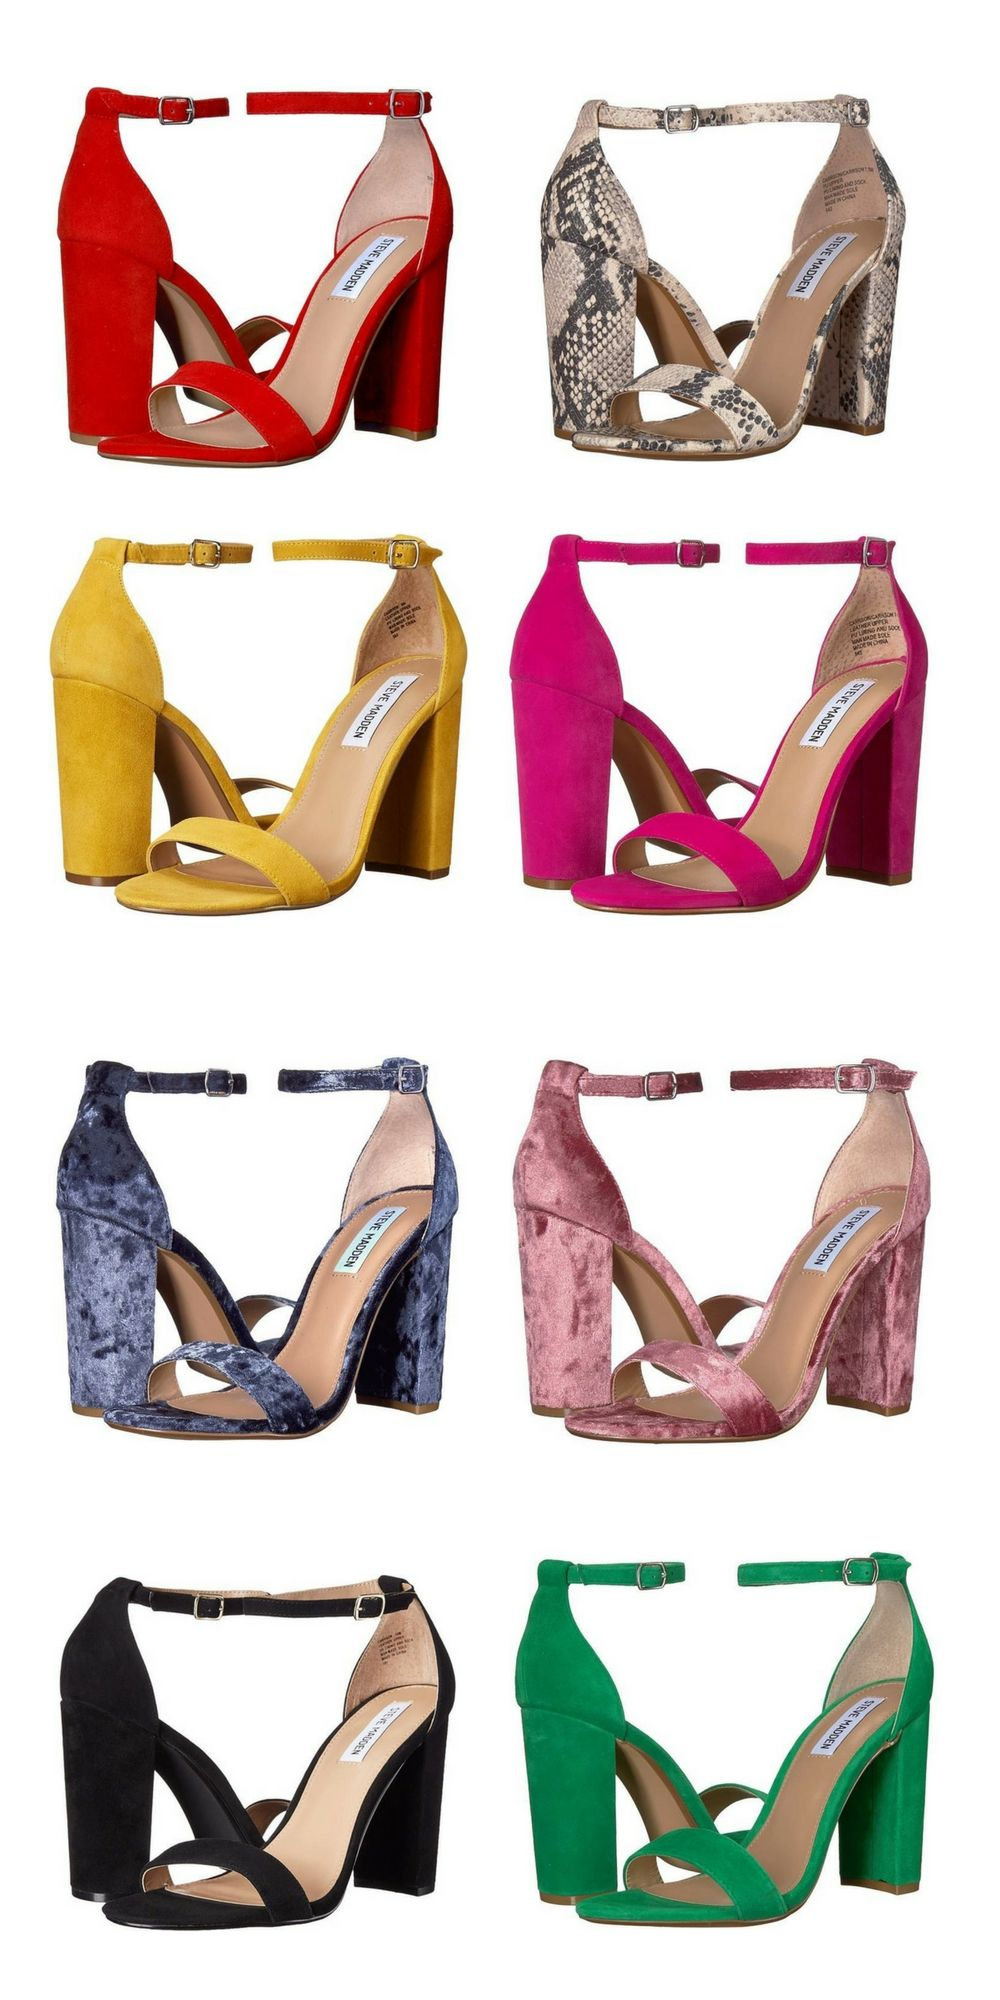 f9b605a49f4 Steve Madden Carrson Heeled Sandals. Red Suede, Snake, Yellow Suede ...